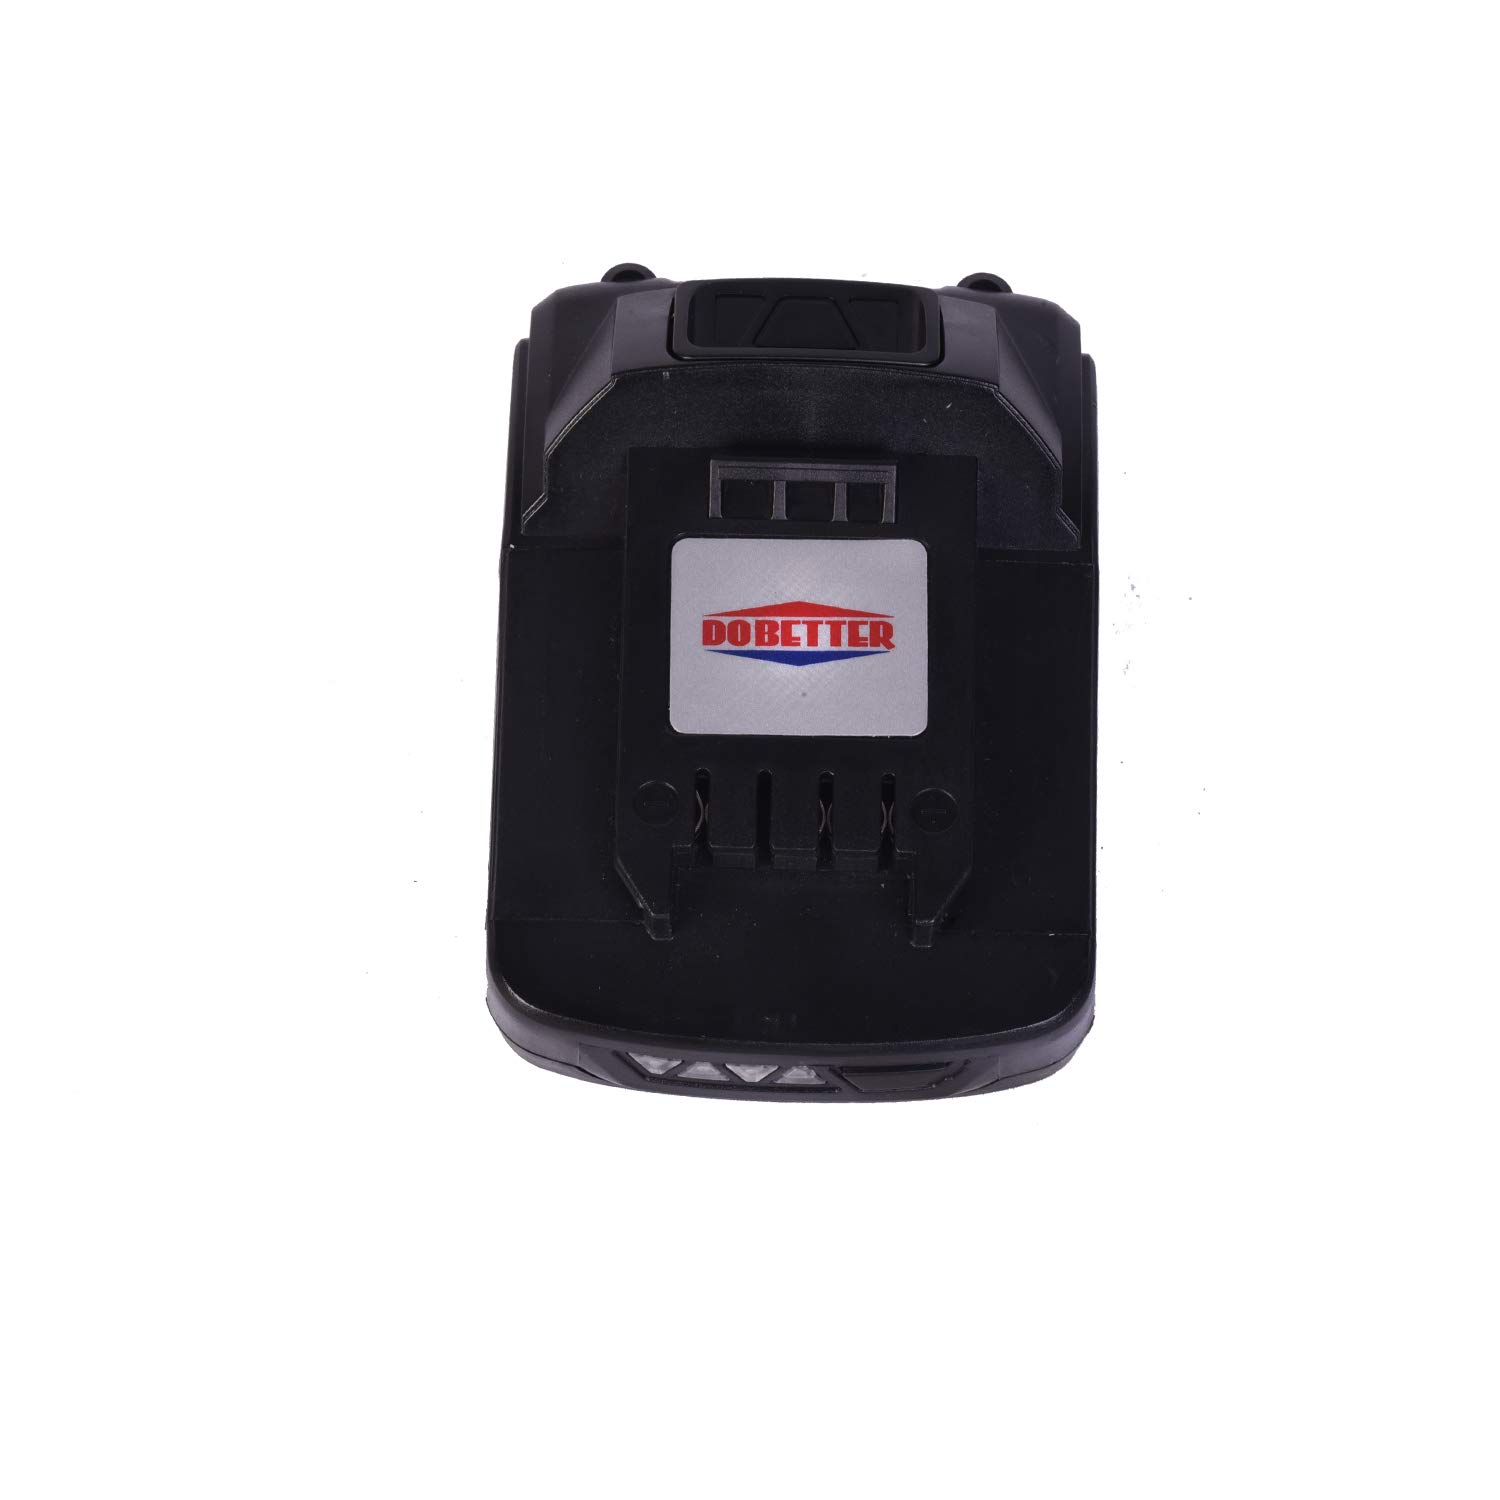 Dobetter 1500mAh 20V Max Lithium Battery Pack Replacement for DOBETTER Cordless Tools -DBB20